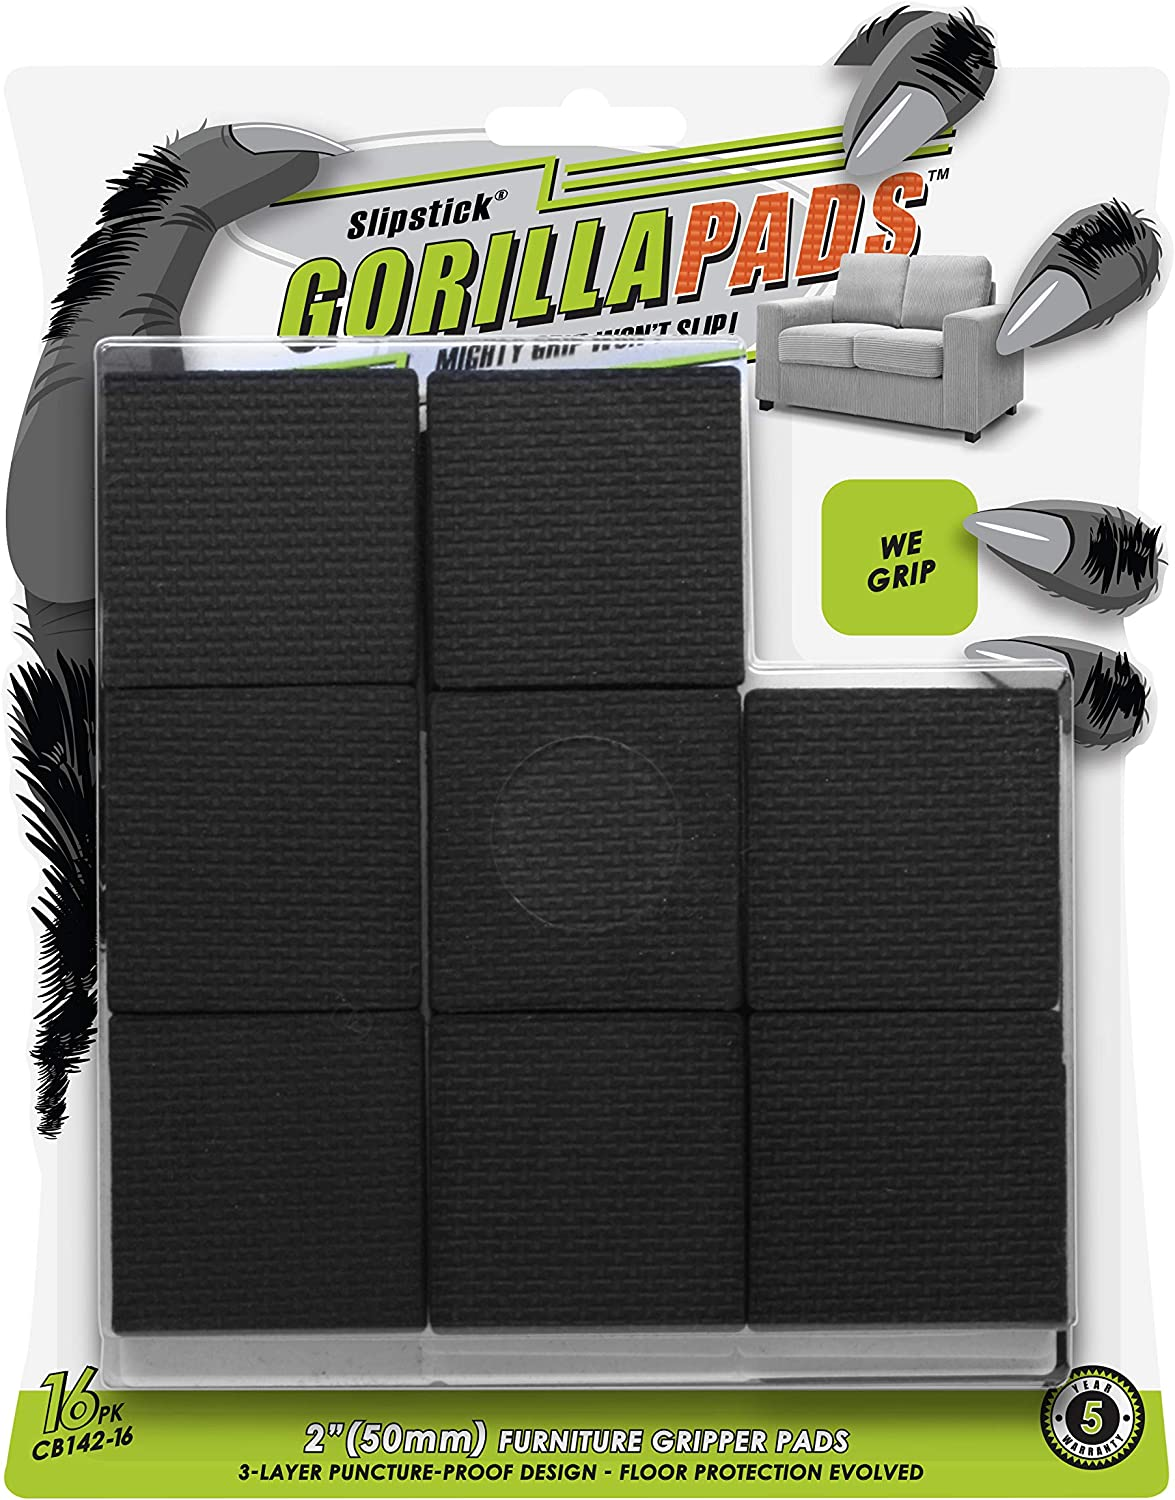 GorillaPads Non-Slip Furniture Pads/Floor Grippers (Set of 16 Grips) 2 Inch Square Floor Protectors for Under Furniture, Black, CB142-16